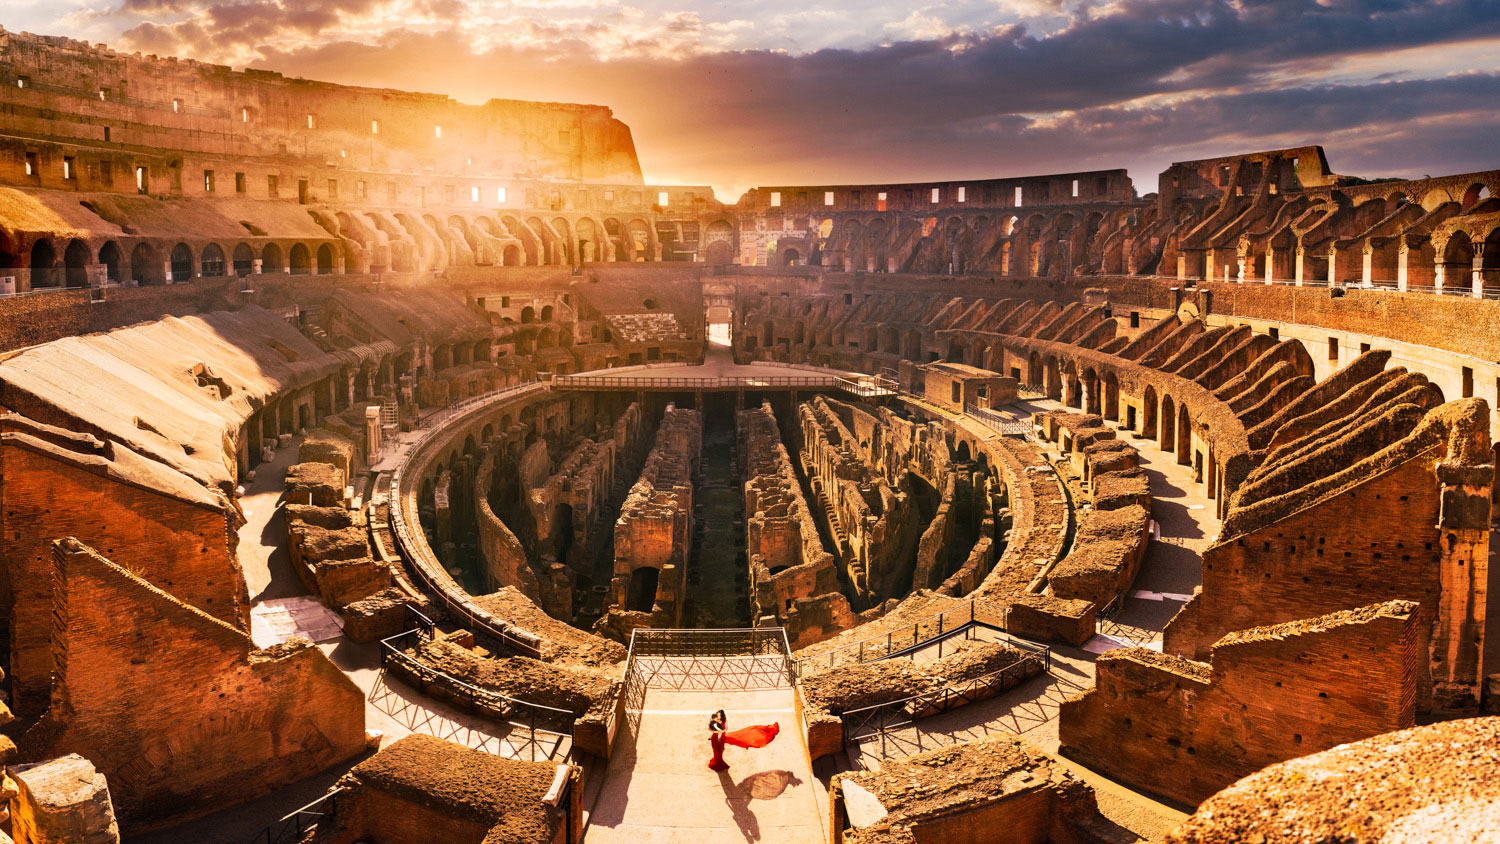 Our best photo of the Roman Colosseum